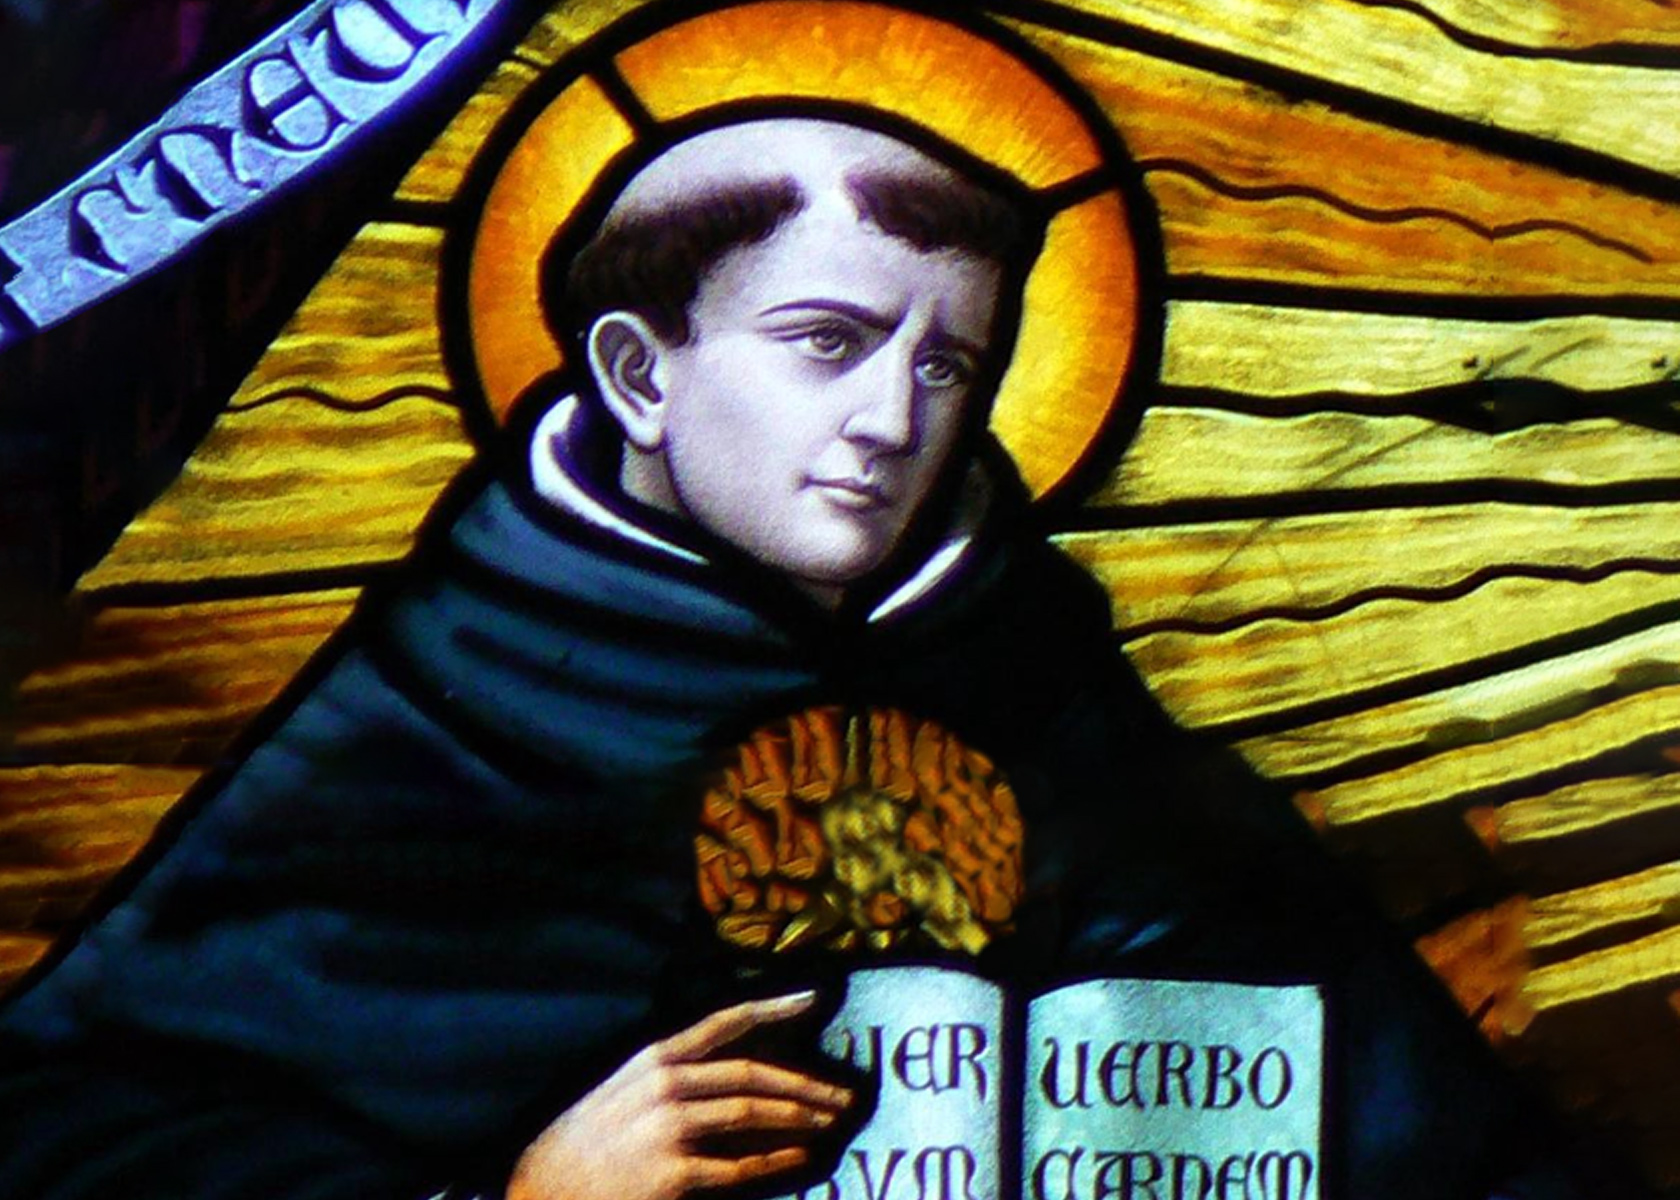 <h1>Why the Masterpiece of Medieval Philosophy was Never Finished</h1> <h4>The Epiphany of Thomas Aquinas</h4>